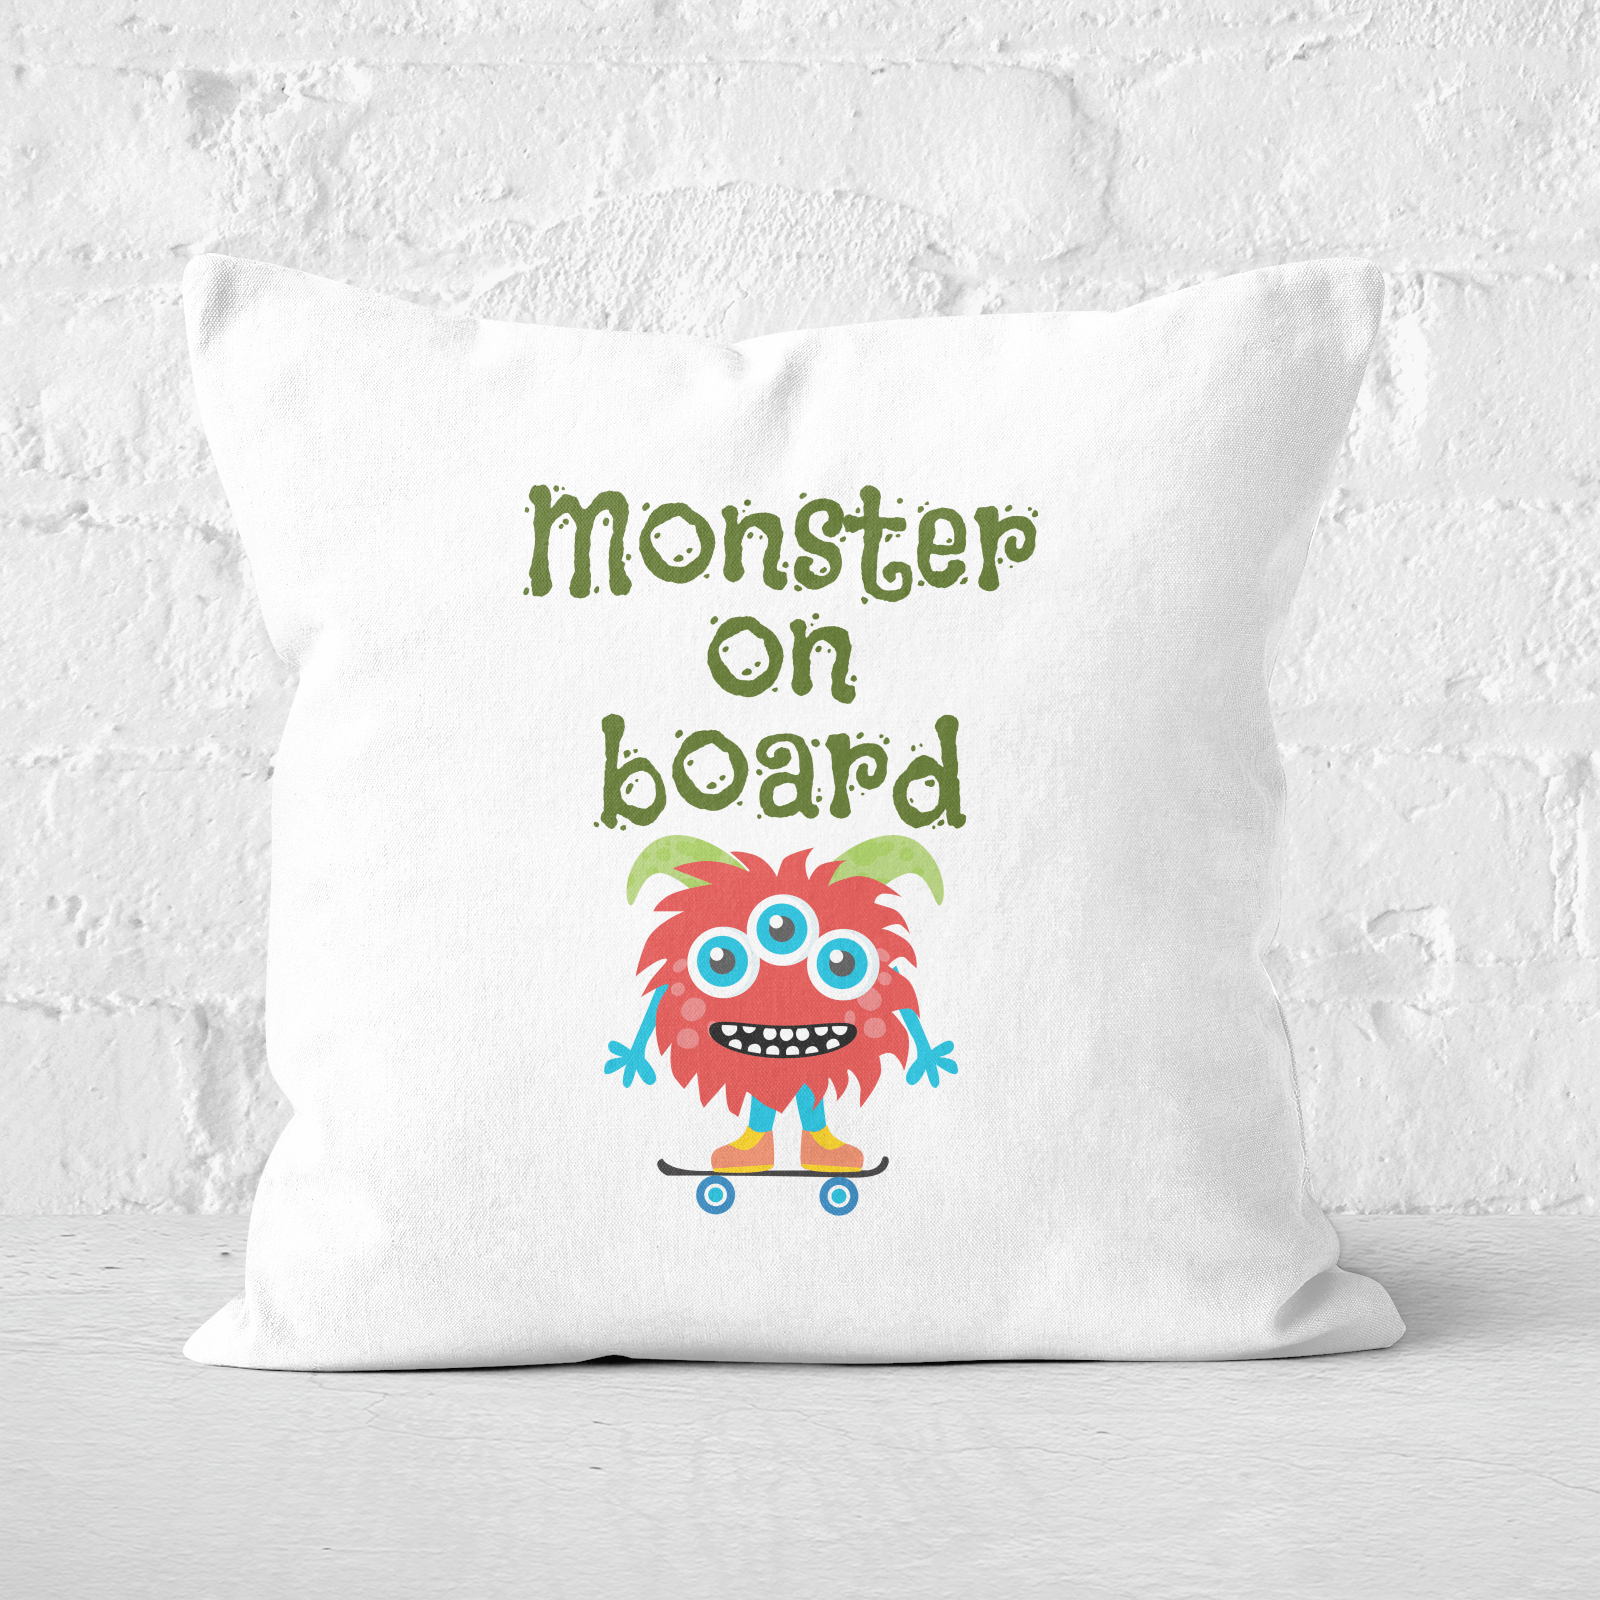 Monster On Board Square Cushion   60x60cm   Soft Touch